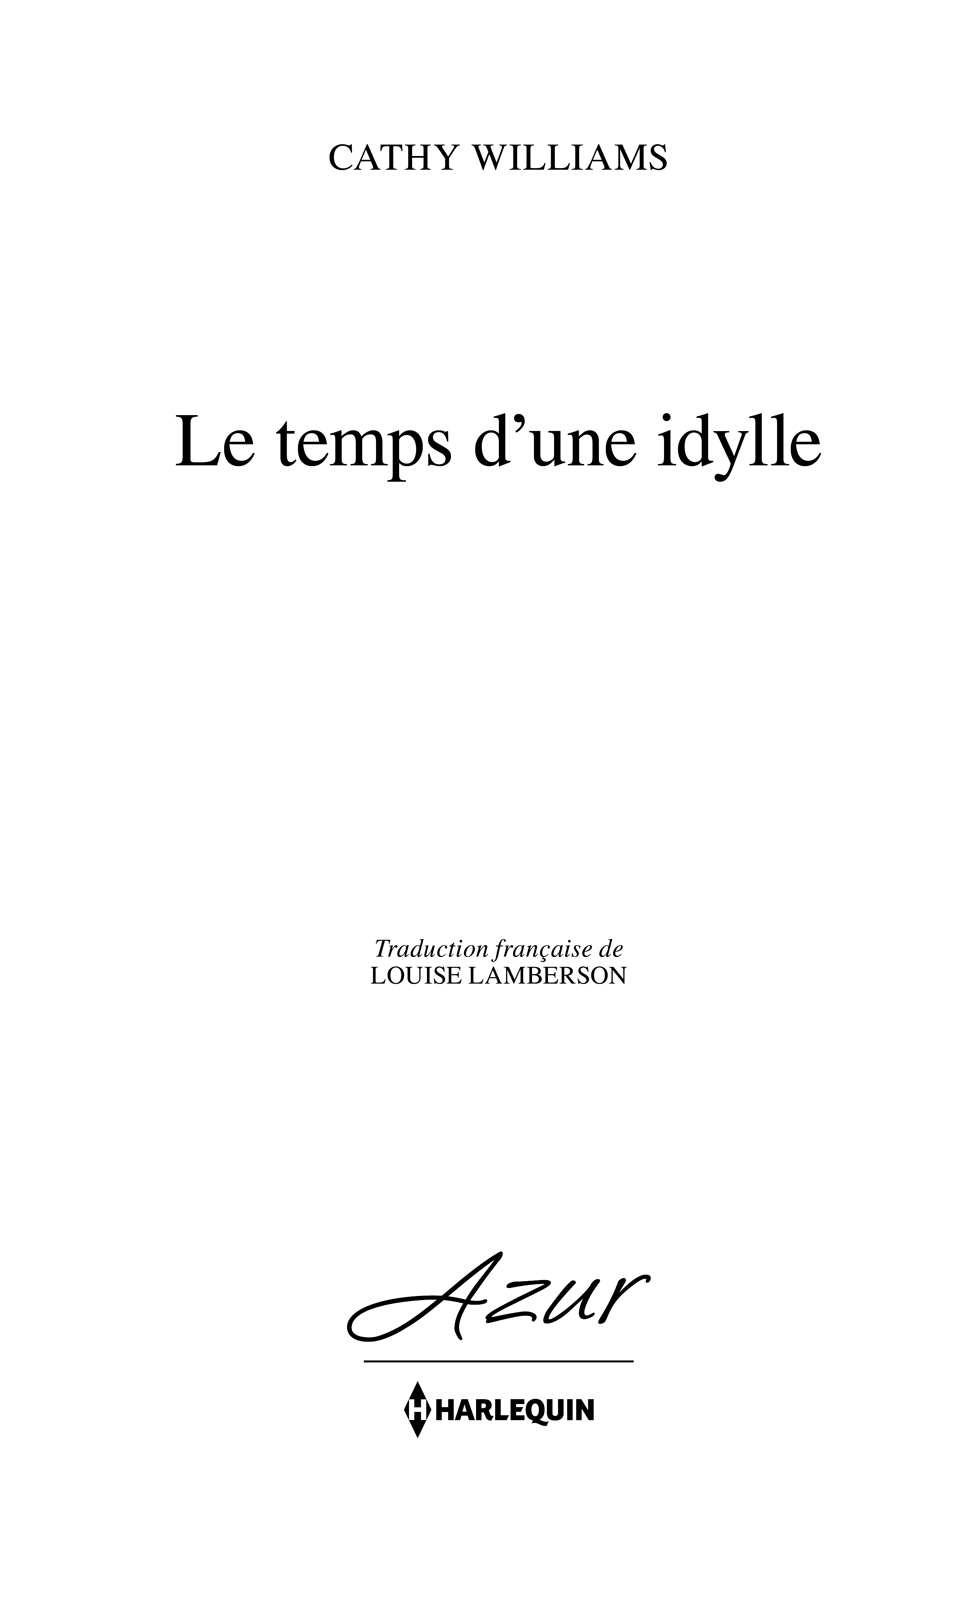 Page de titre : Cathy Williams, Le temps d'une idylle, Harlequin